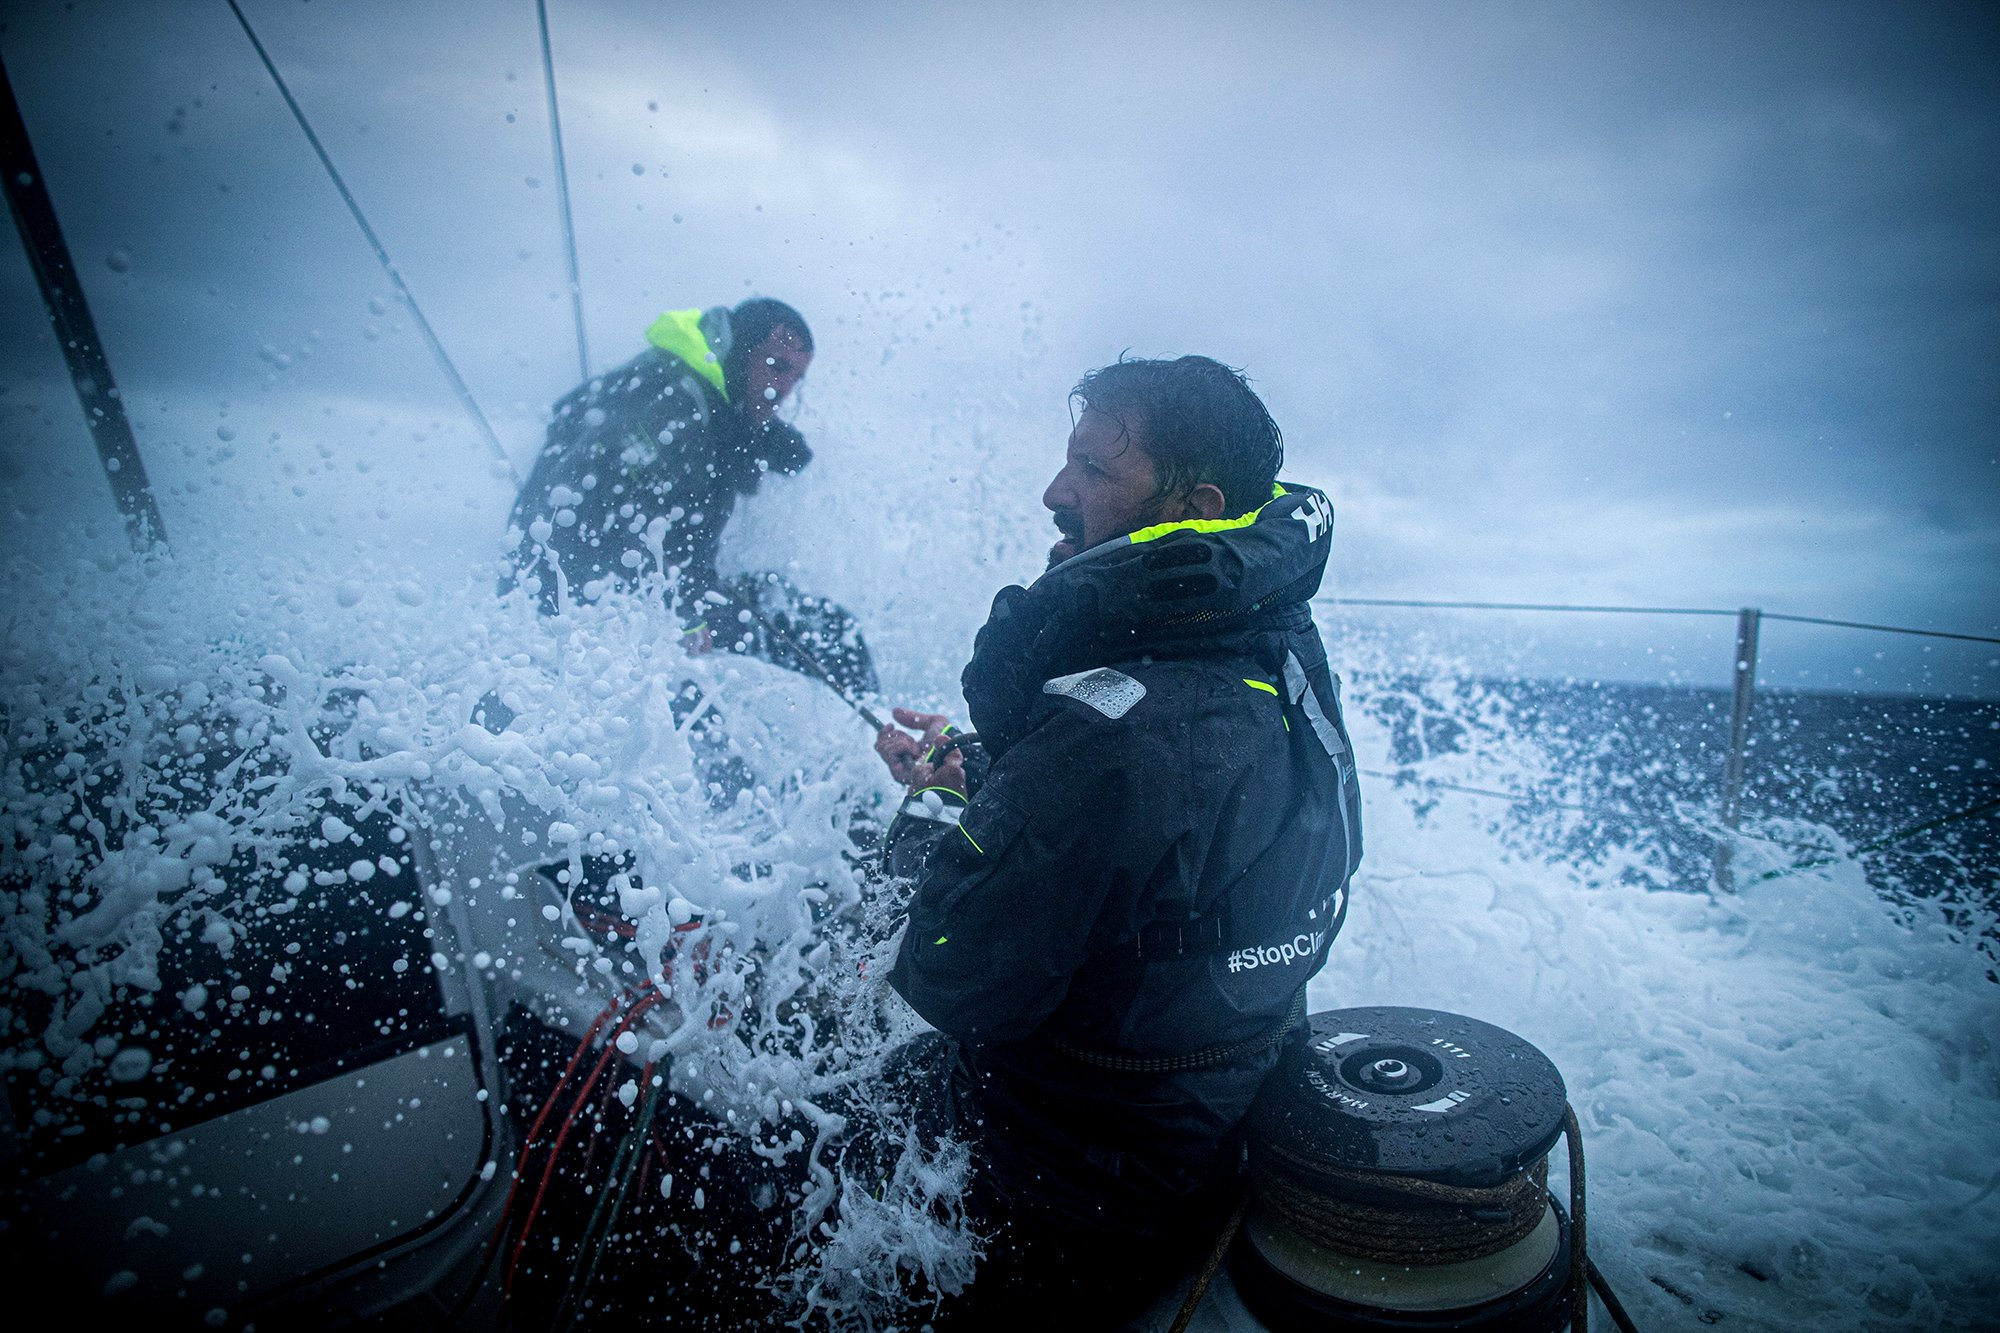 Somewhere cold and wet in the Atlantic Ocean